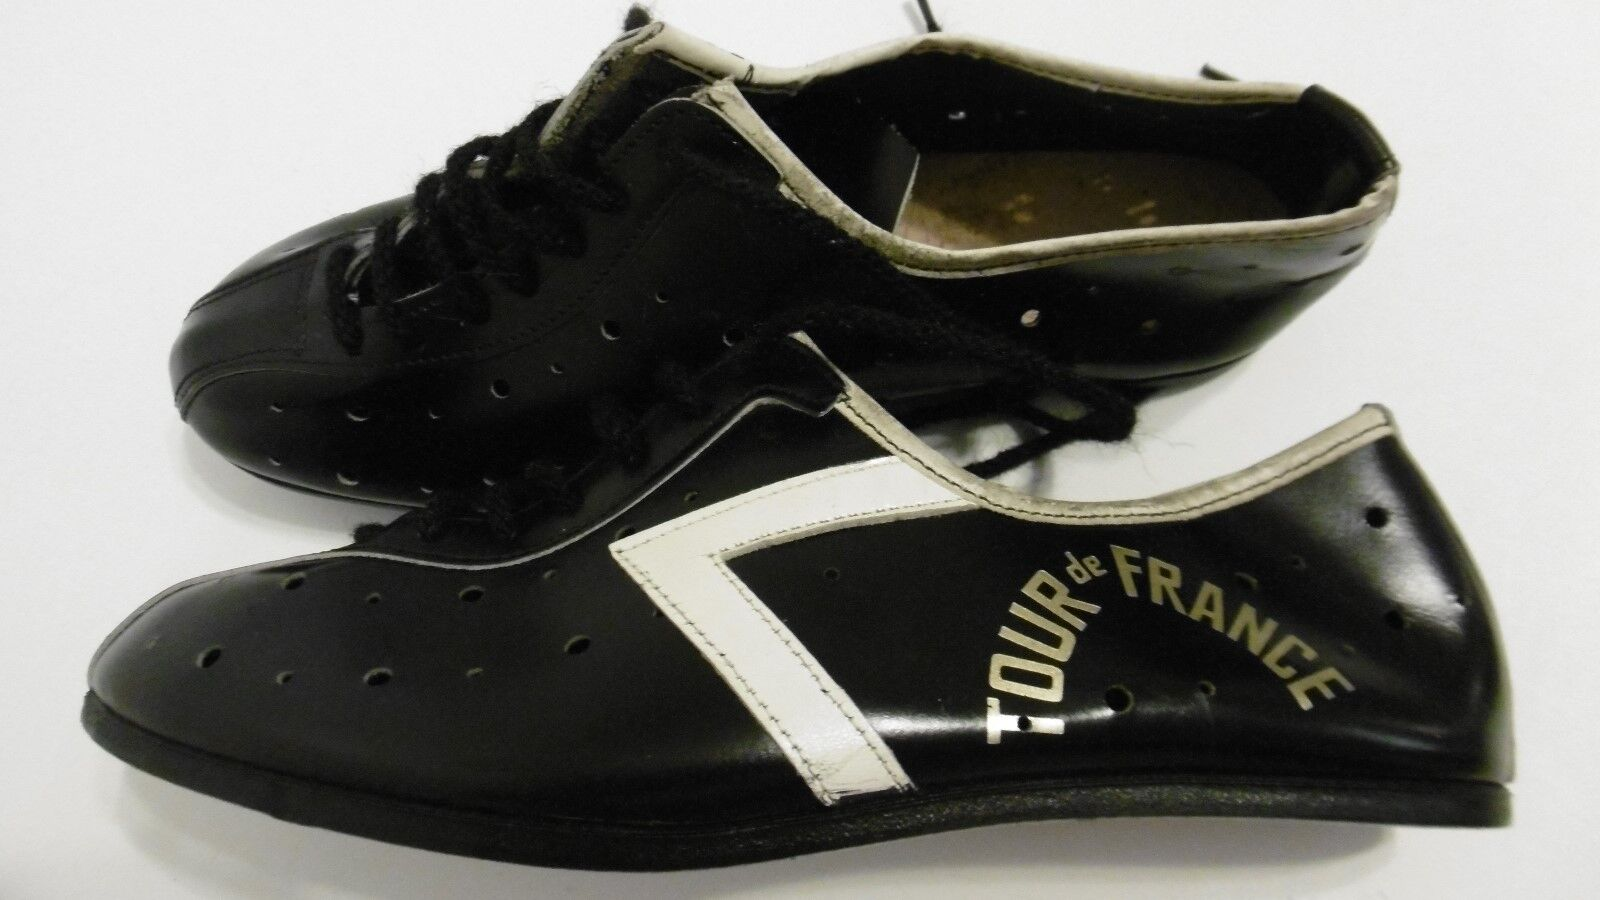 Vintage Tour De France Leather Cycling Shoes Size 39 NOS